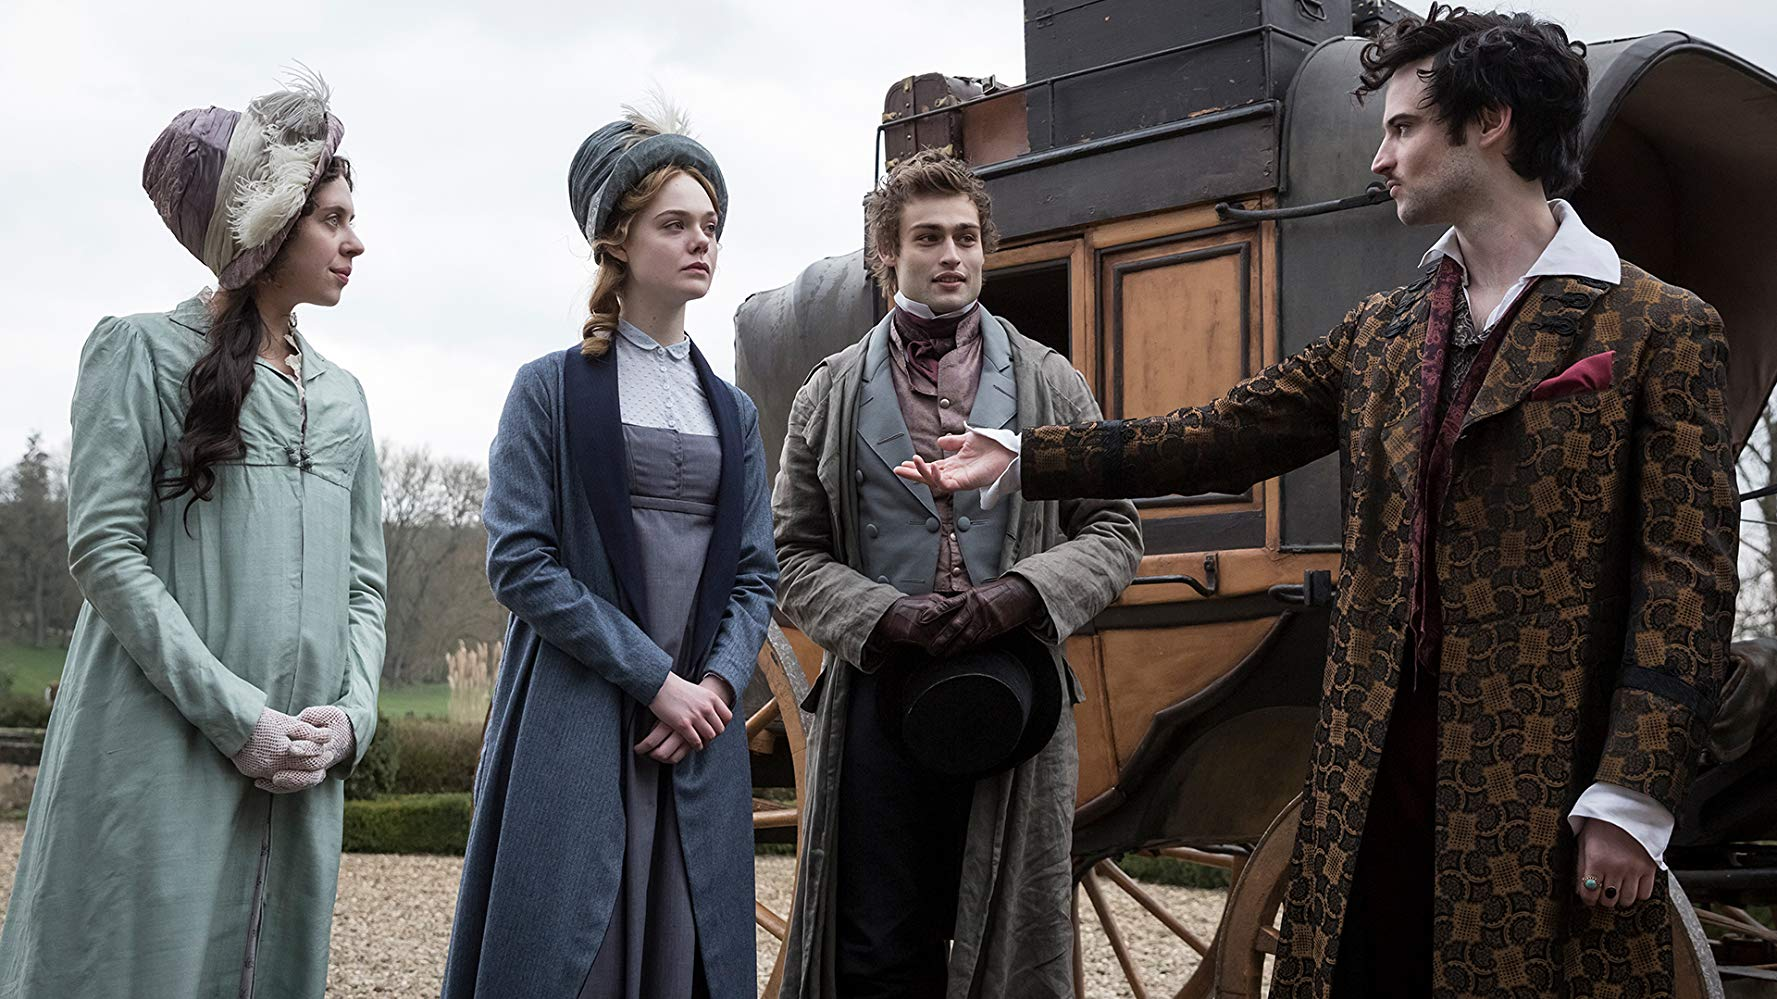 Arrival at the Villa Deodati - Claire Clairmont (Bel Powley), Mary Shelley (Elle Fanning), Percy Shelley (Douglas Booth), Lord Byron (Tom Sturridge)